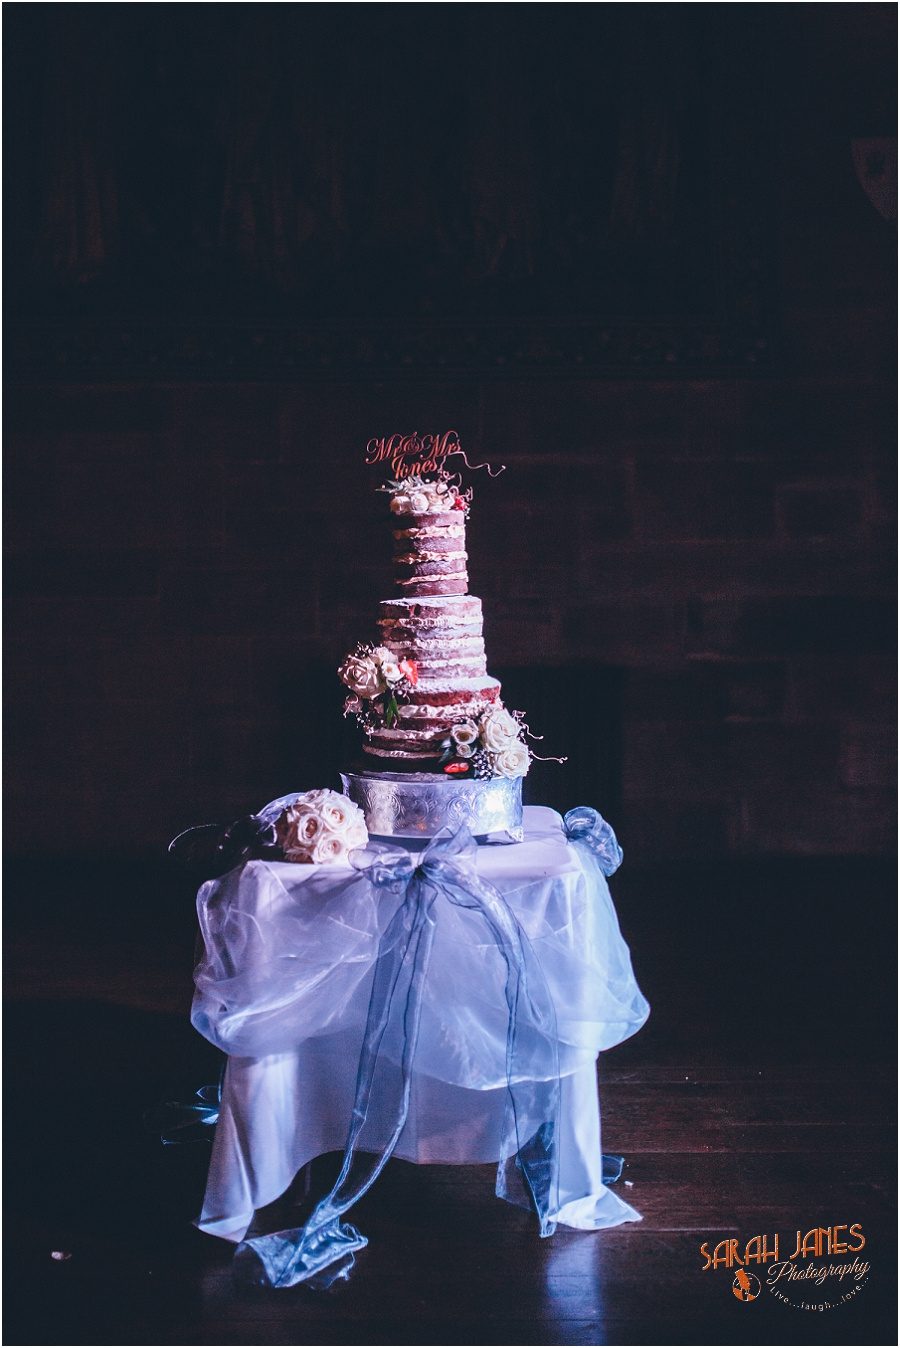 Sarah Janes Photography, Wedding photography Chester, Wedding photographer Chester, Wedding photography at Peckforton Castle_0049.jpg